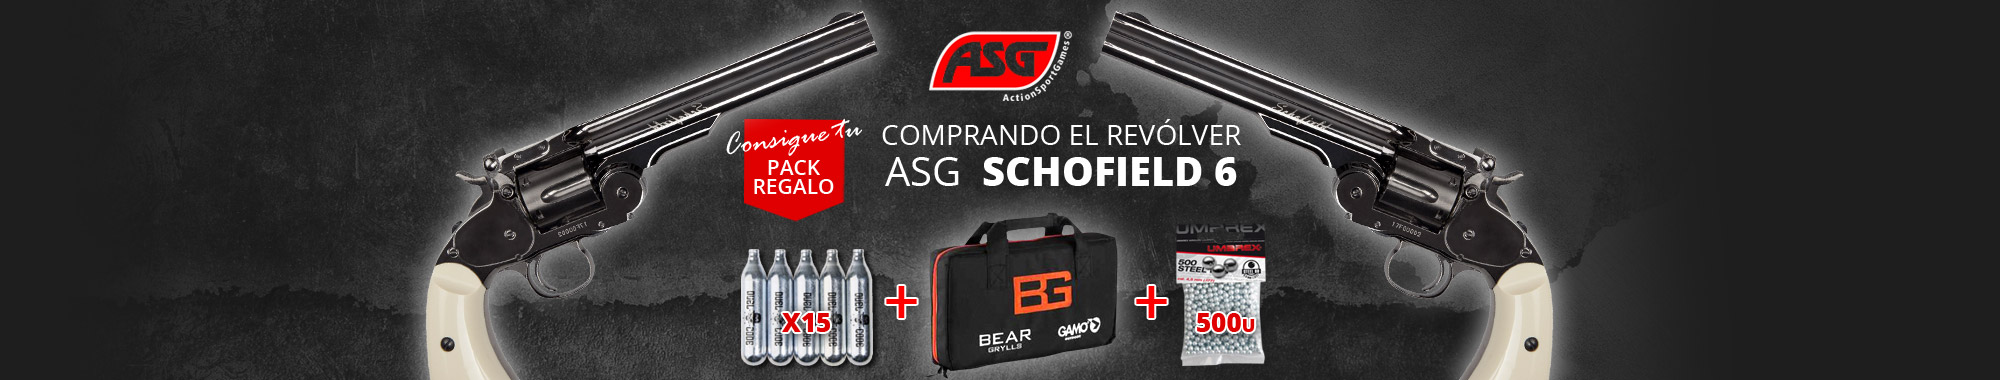 Pack regalo ASG Schofield